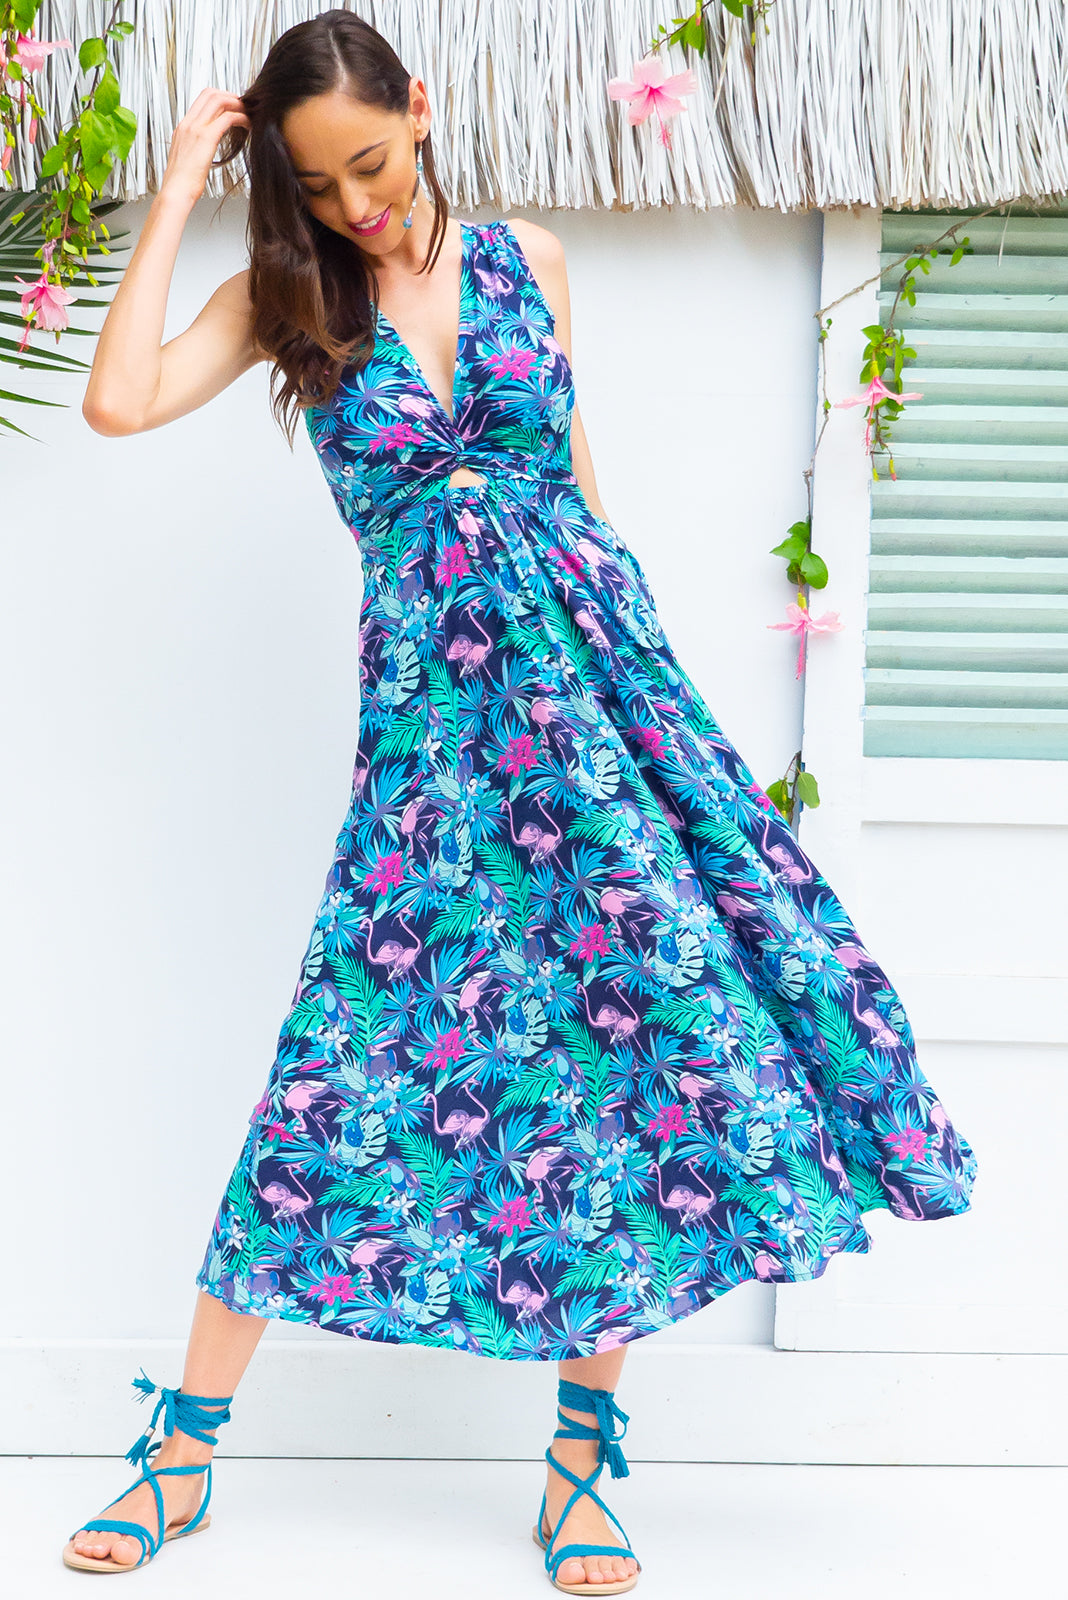 Darling Flamingo Blues Dress tie front wrap dress with an elastic waist and a plunging v neckline made from a 100% rayon fabric in a stunning navy based tropical floral and flamingo print